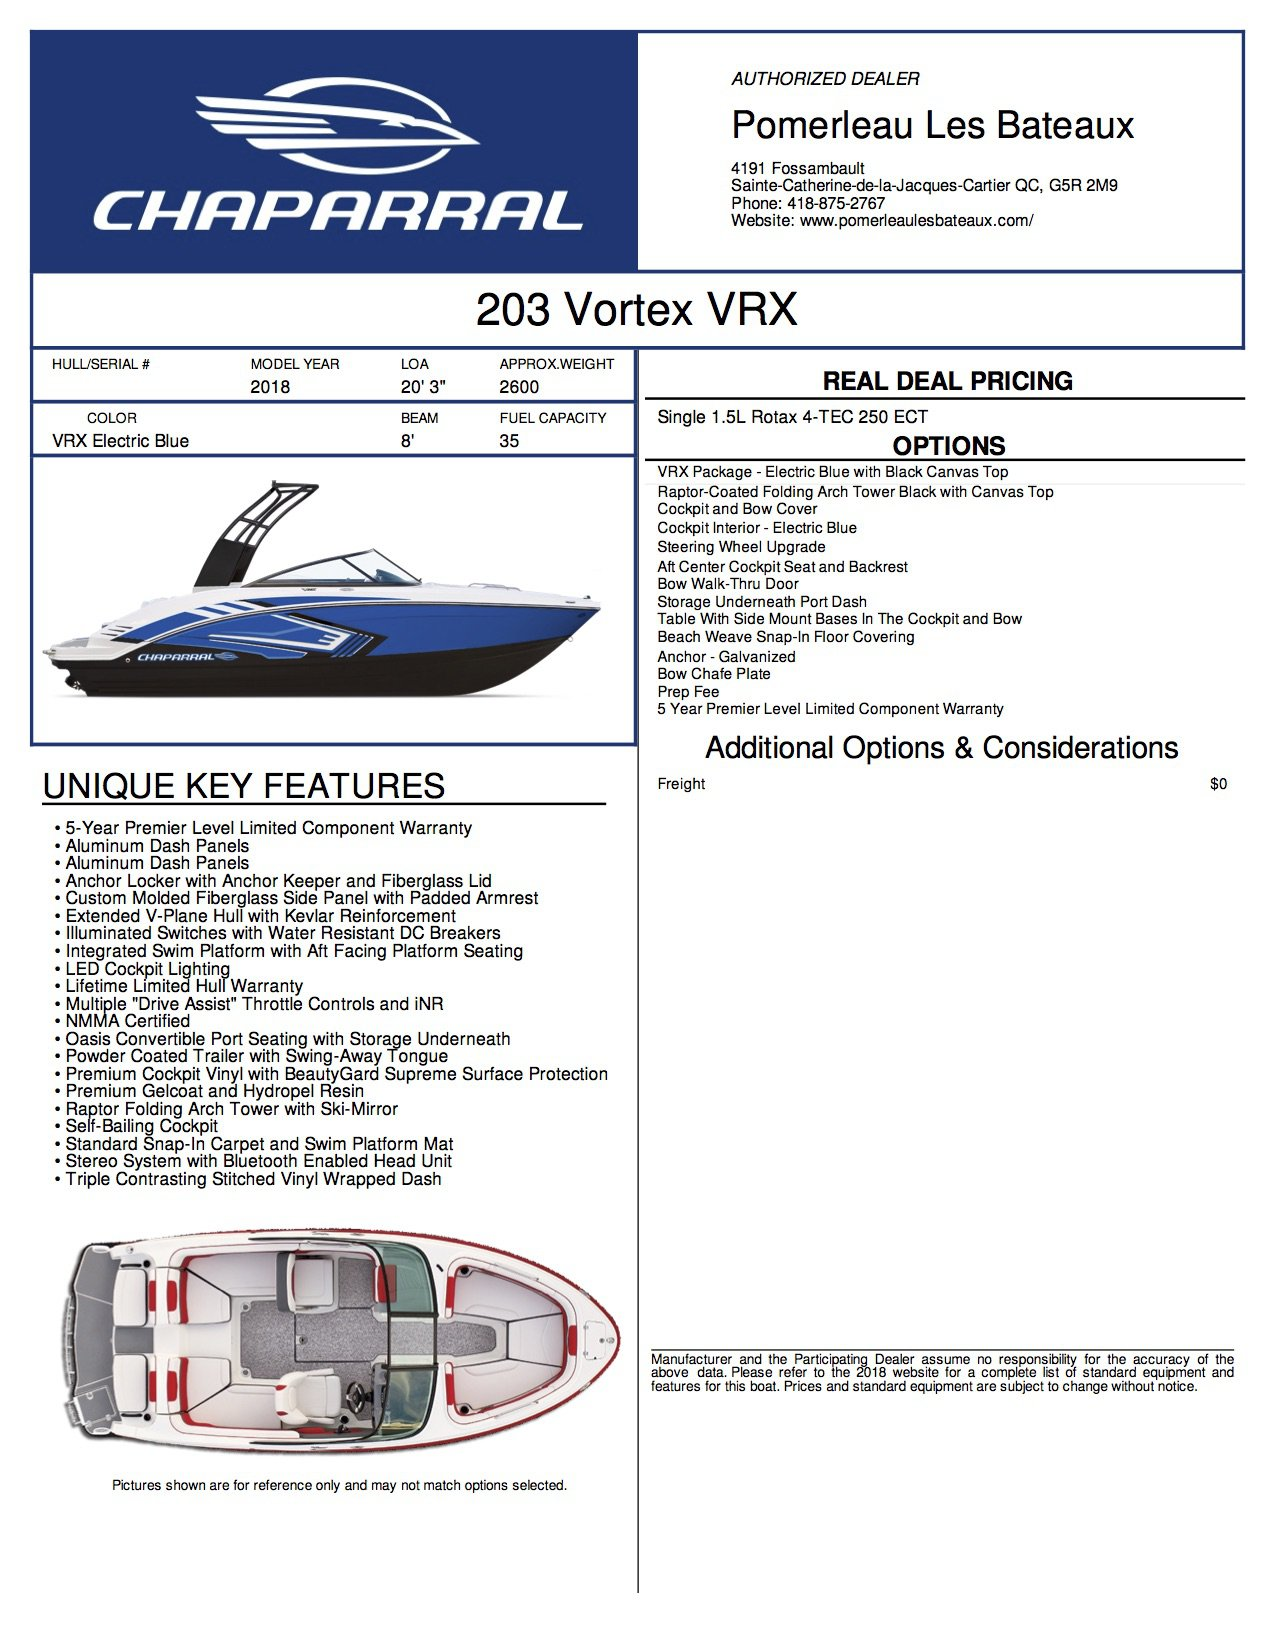 Chaparral 203 VRX - Vortex-2018-203--Window-Sticker-244174